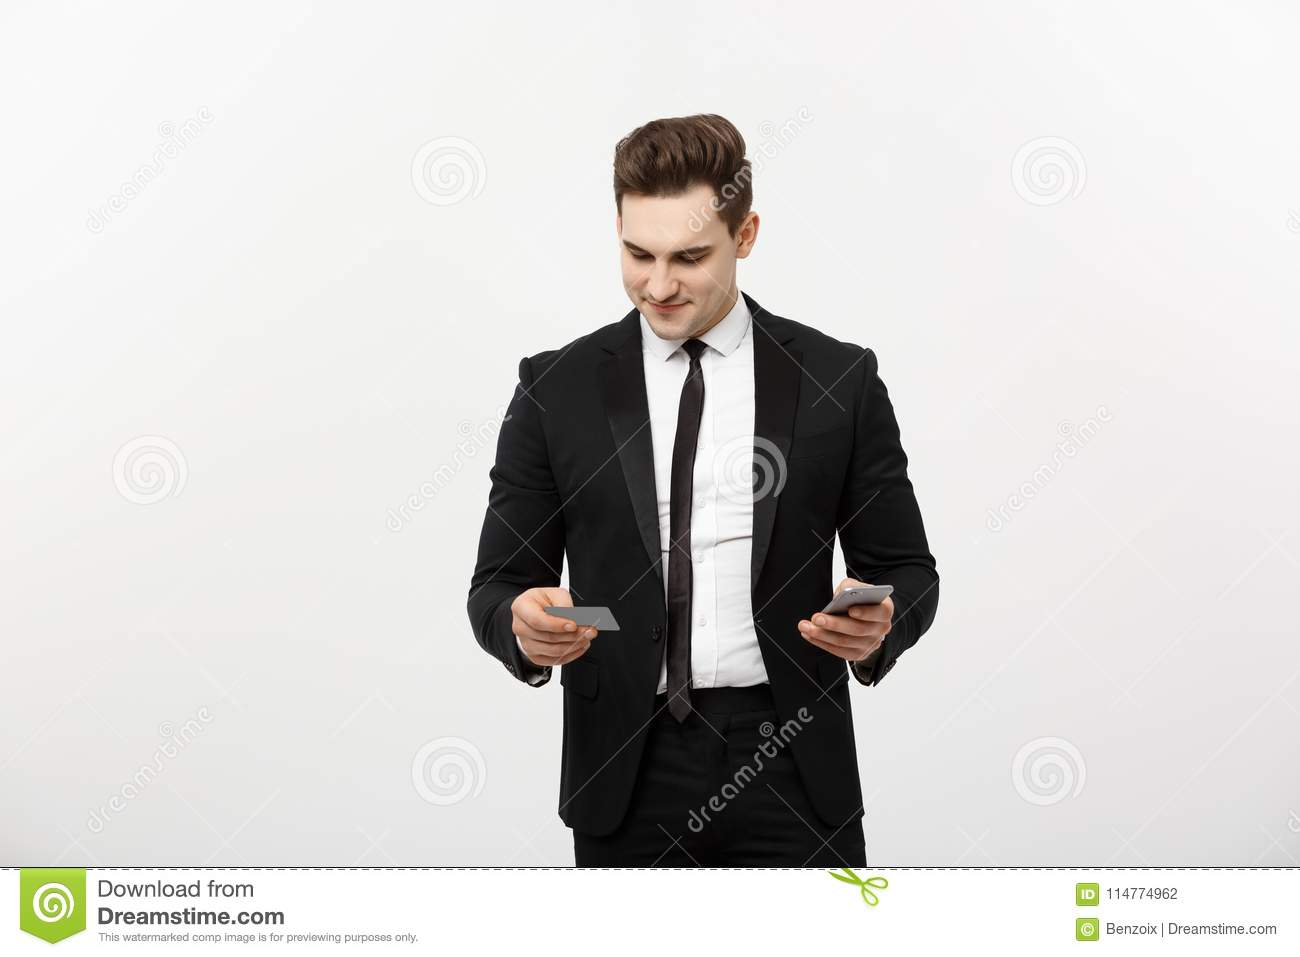 c81724debd00 Portrait of happy young businessman in smart black suit standing over white  wall background. Holding